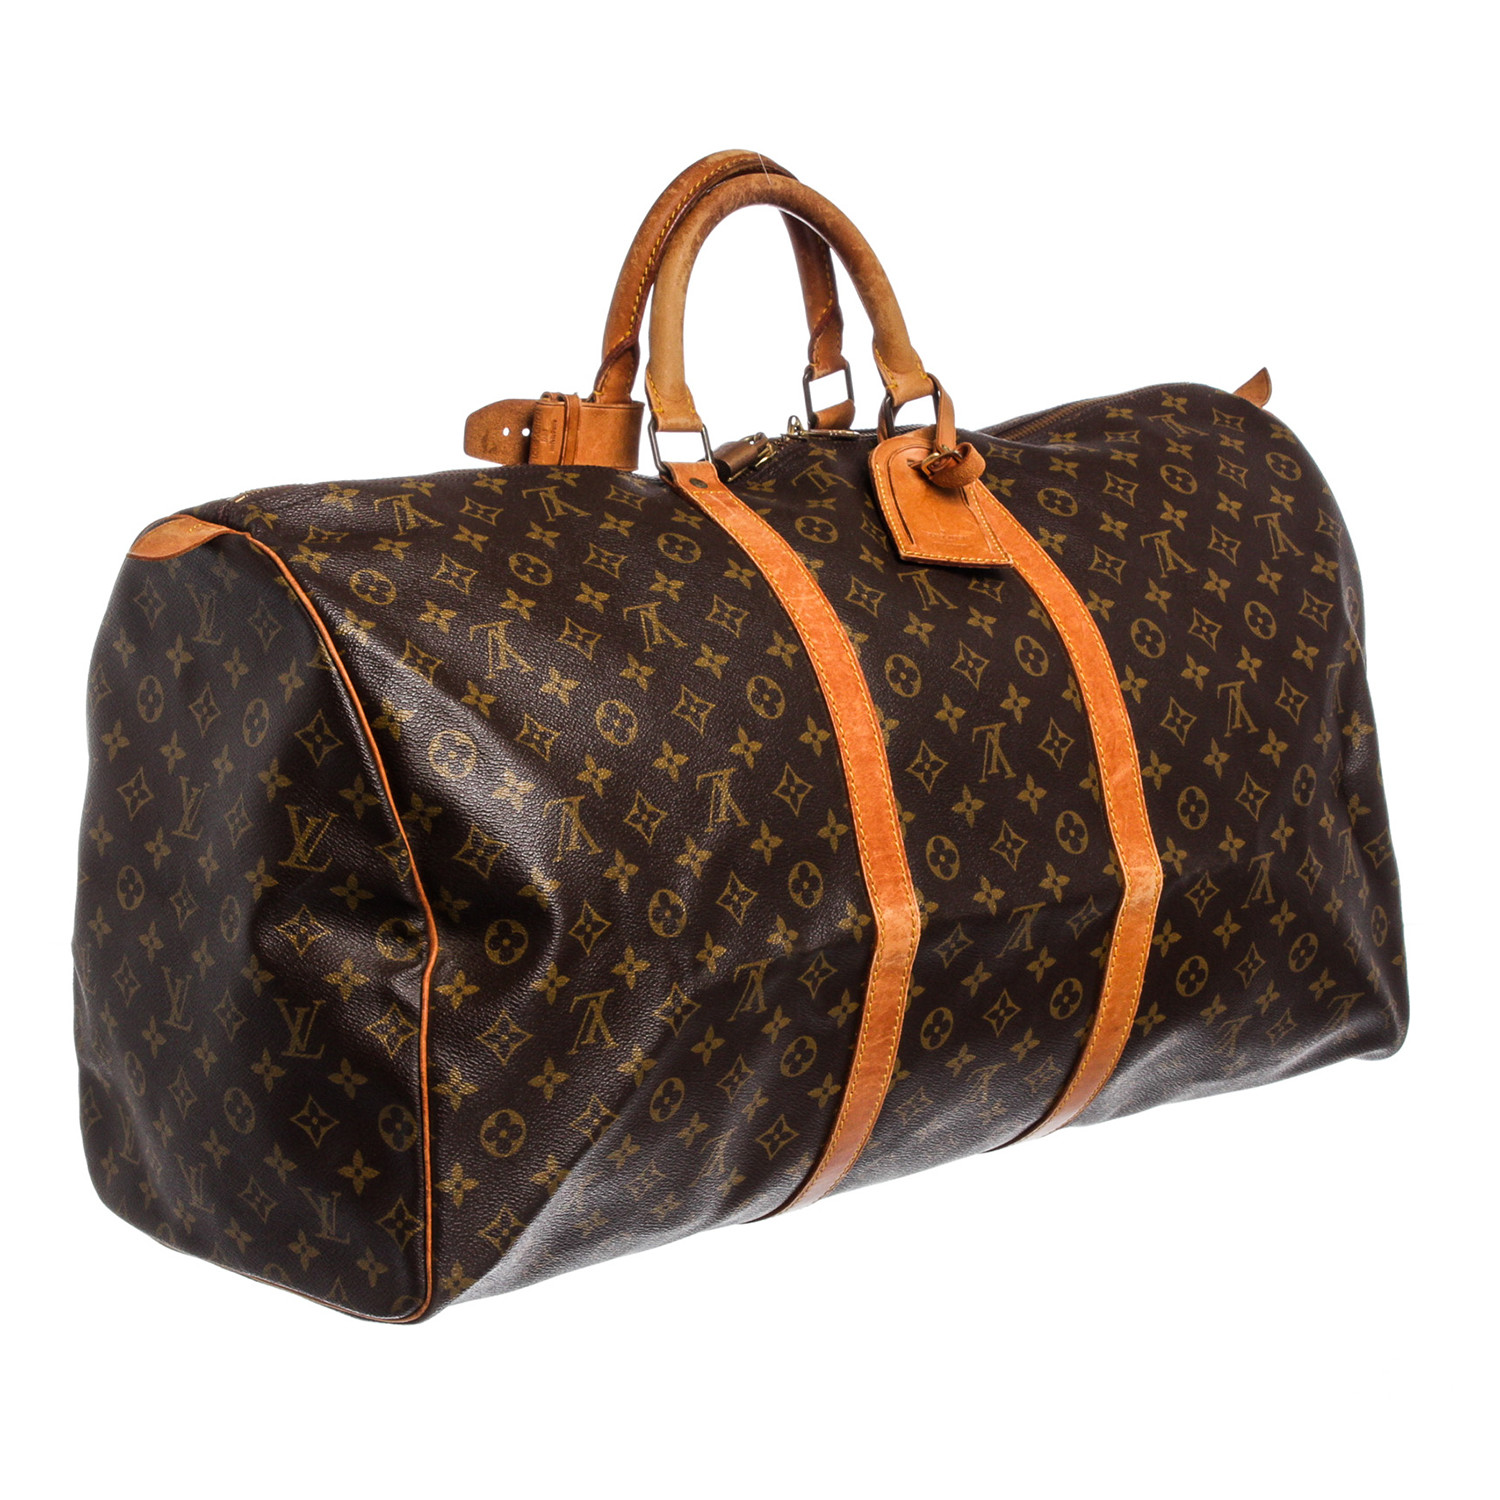 8708ce1d1c1f Canvas Leather Monogram Keepall 60 cm Duffle Bag Luggage    Pre-Owned